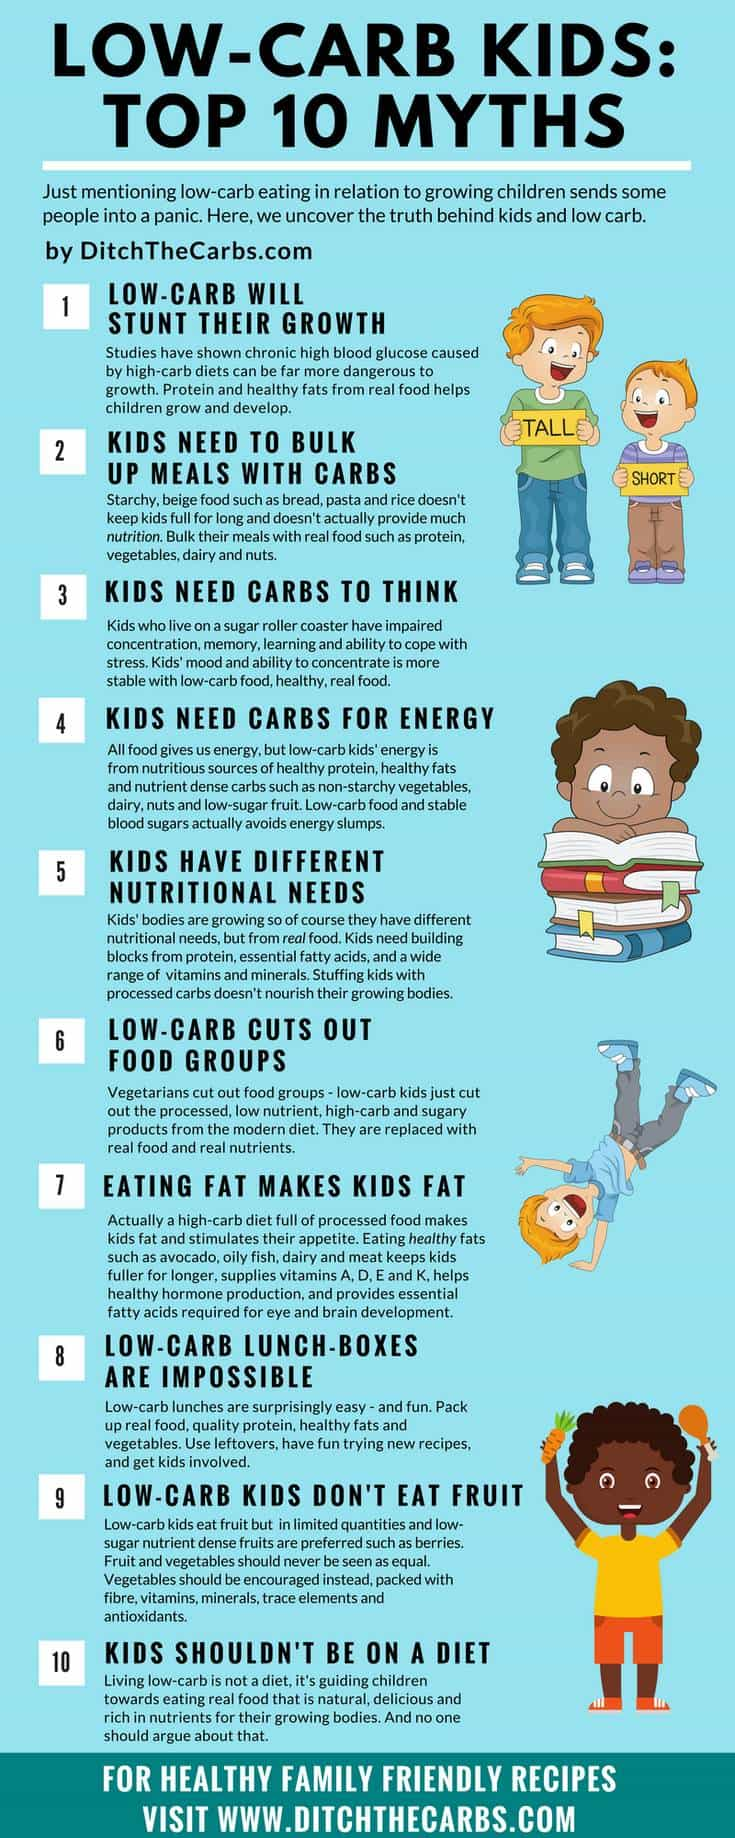 TOP 10 MYTHS ABOUT LOW-CARB KIDS